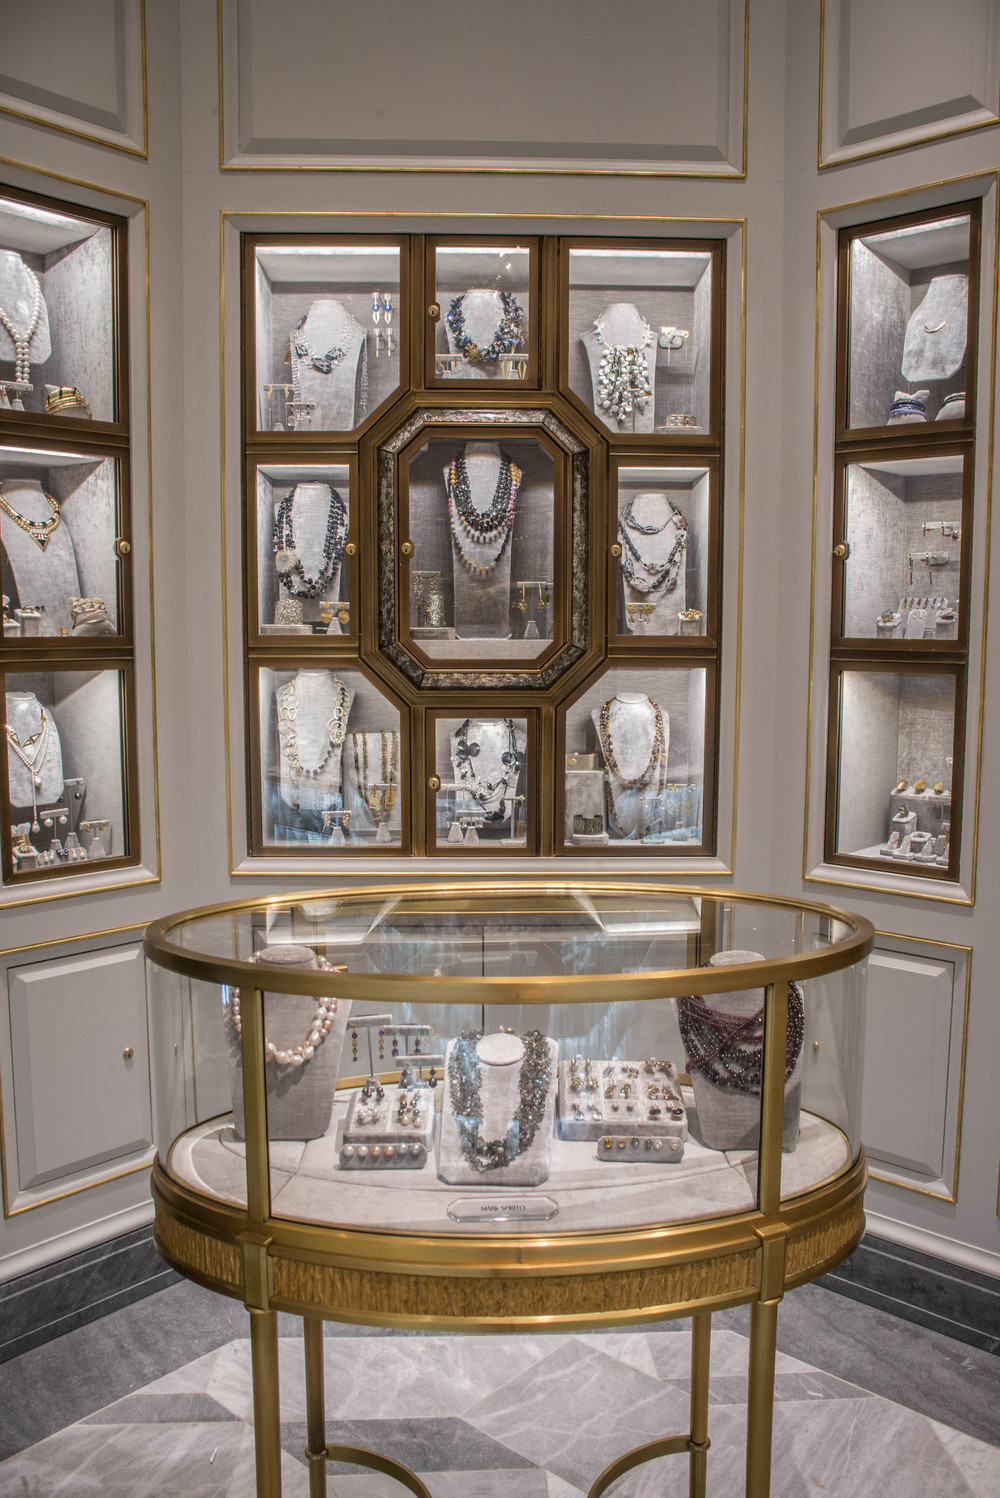 JEWELRY SALON - BERGDORF GOODMAN